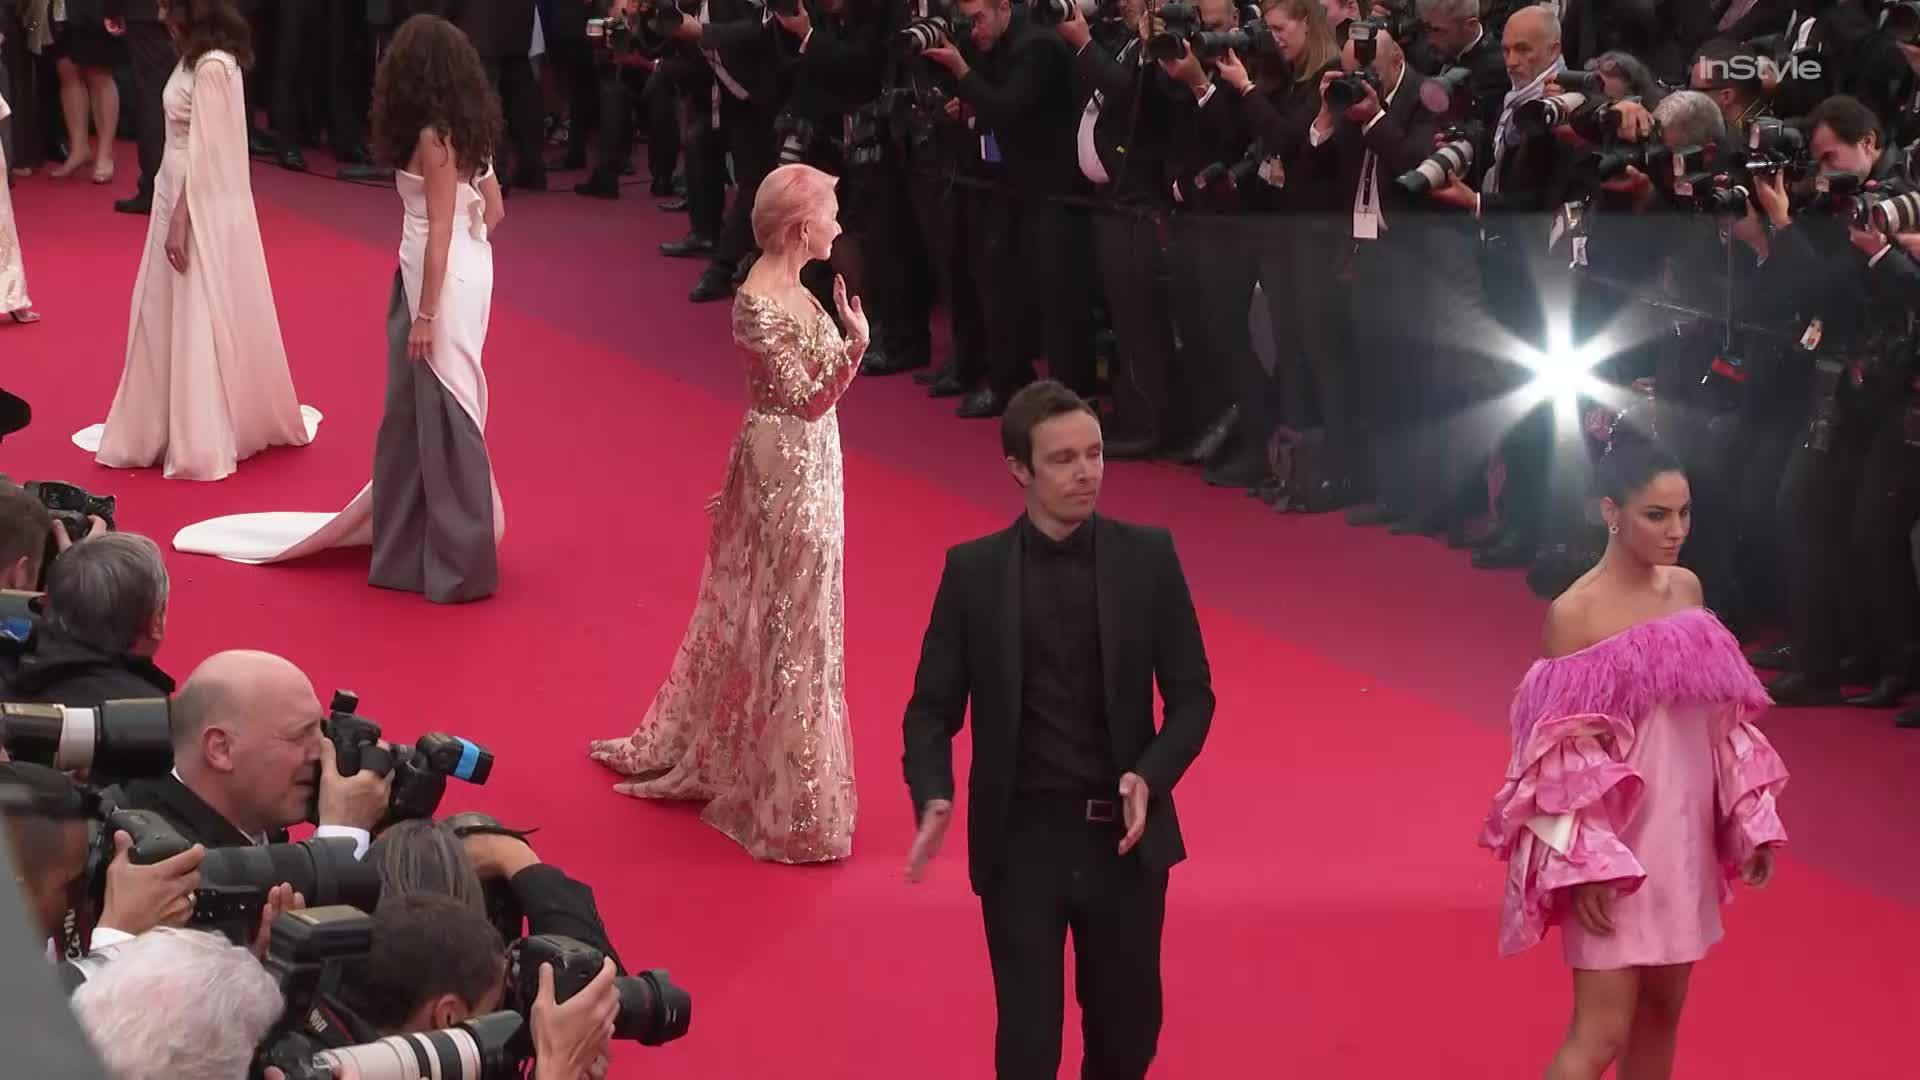 Cannes 2019: Helen Mirren has pink hair, Priyanka and Nick Jonas' arrival and more red carpet photos